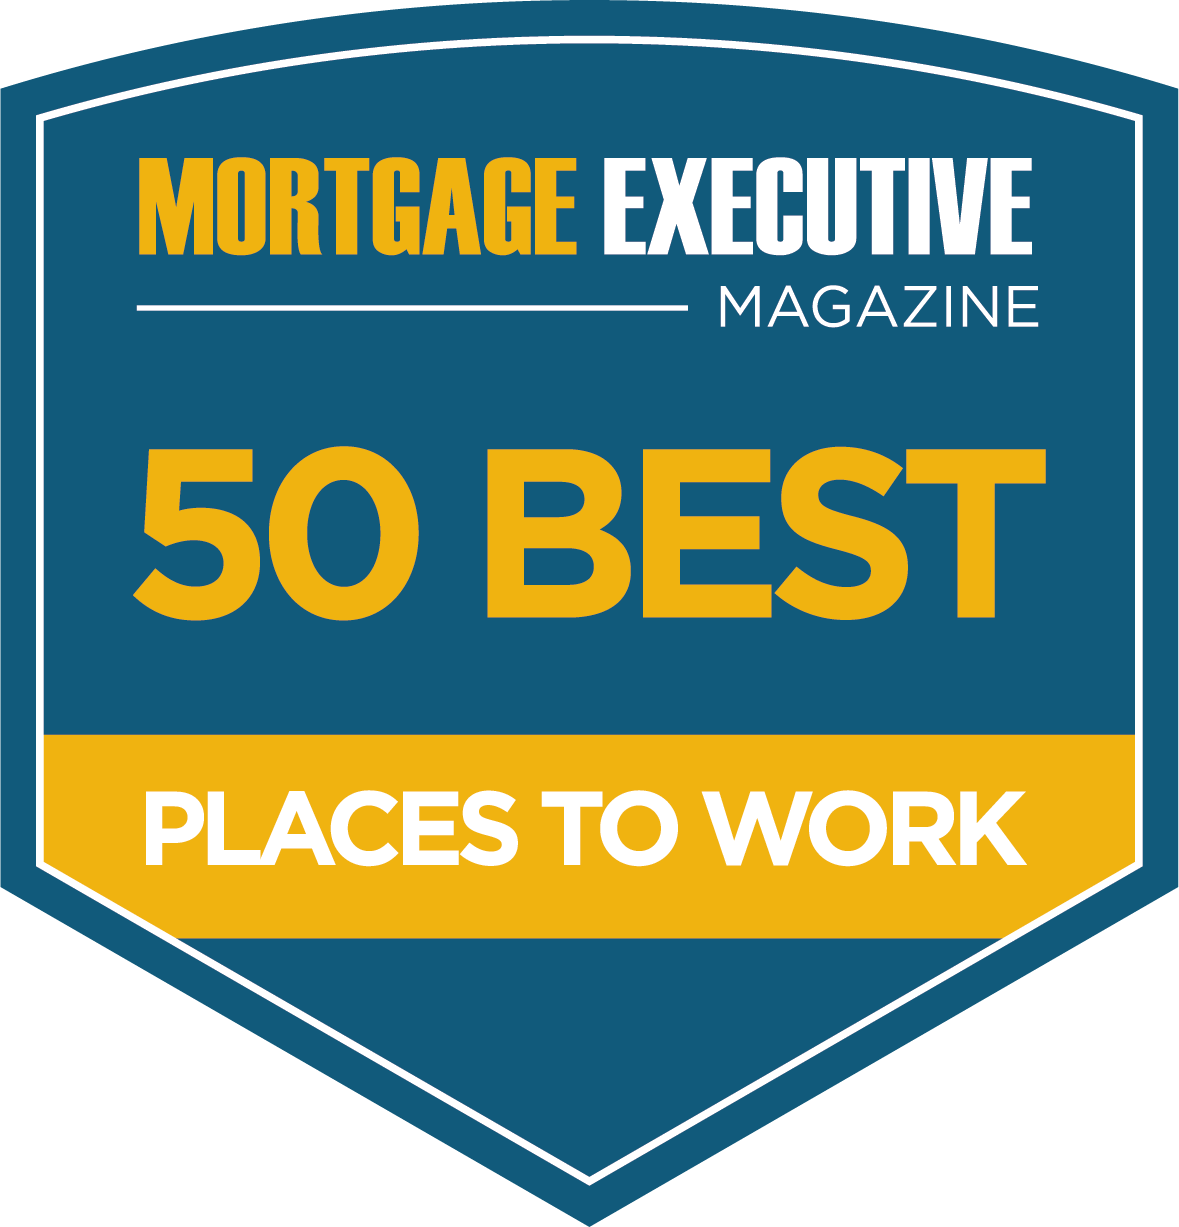 Mortgage Executive Magazine Best Place to Work Award